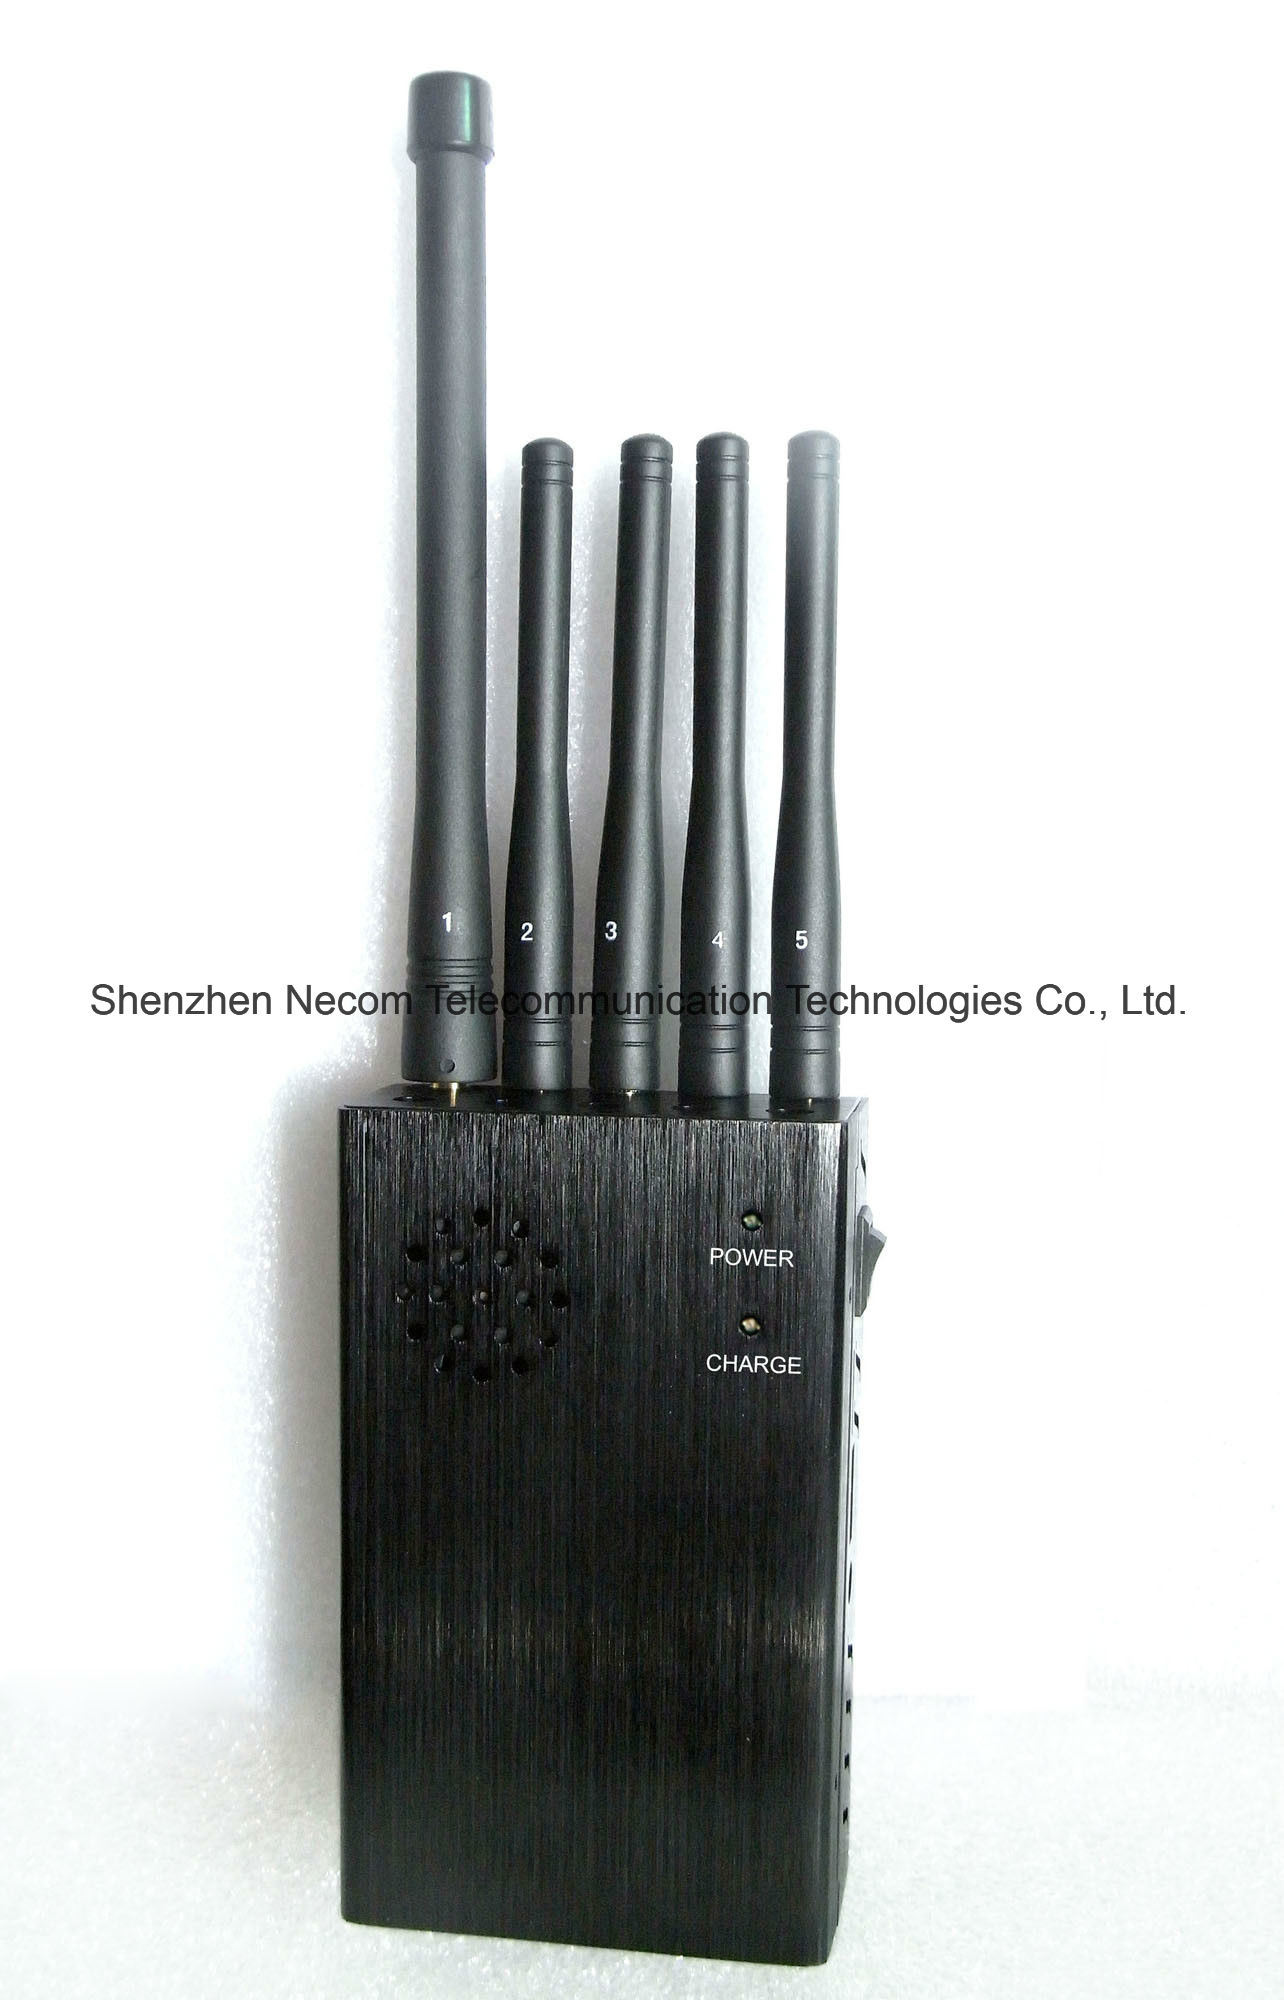 gps tracking device signal jammer wholesale